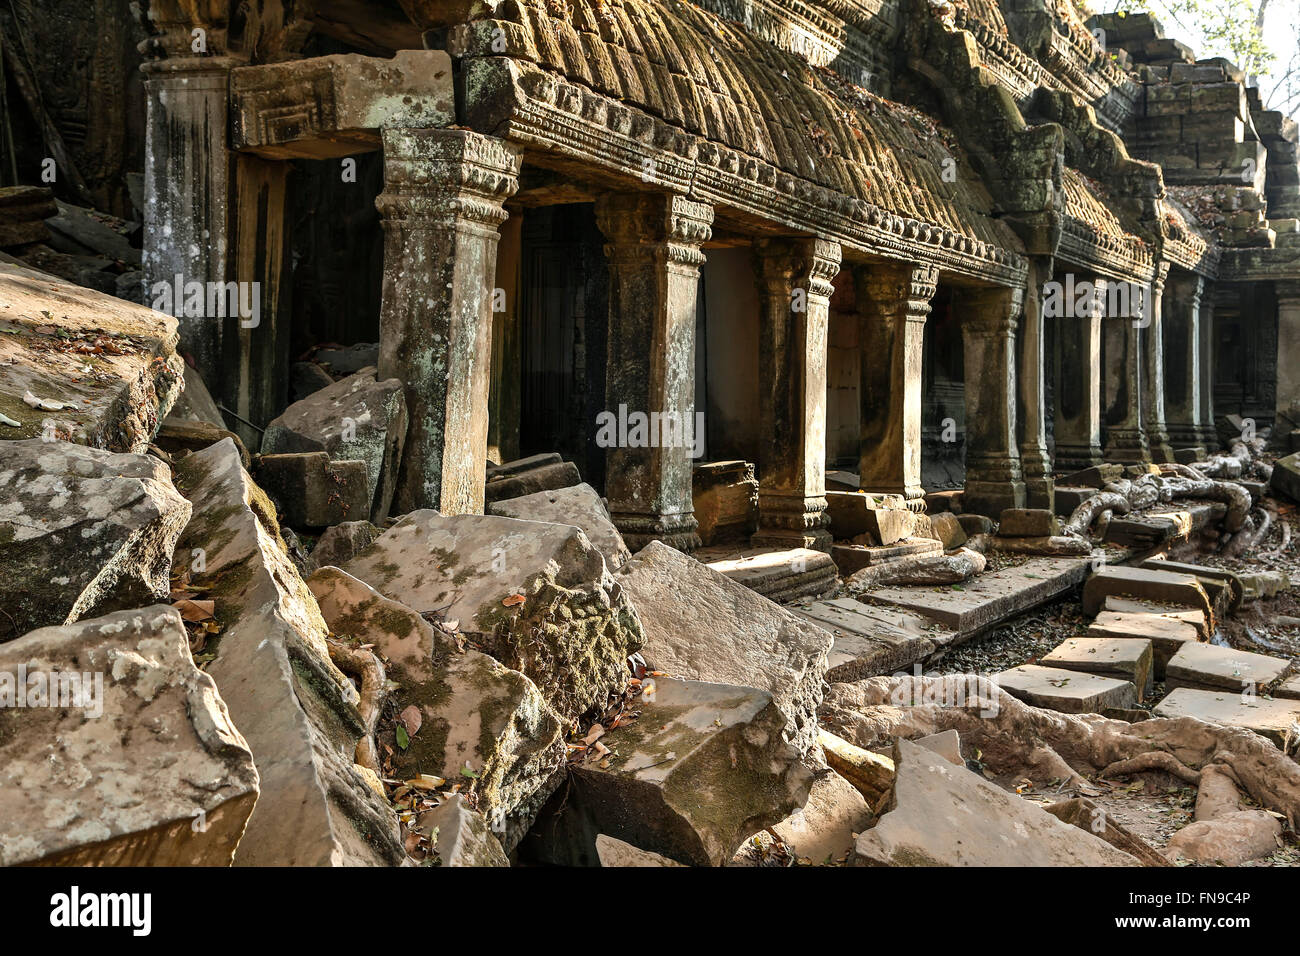 Building and fallen masonry, Ta Prohm Temple, Angkor Archaeological Park, Siem Reap, Cambodia - Stock Image